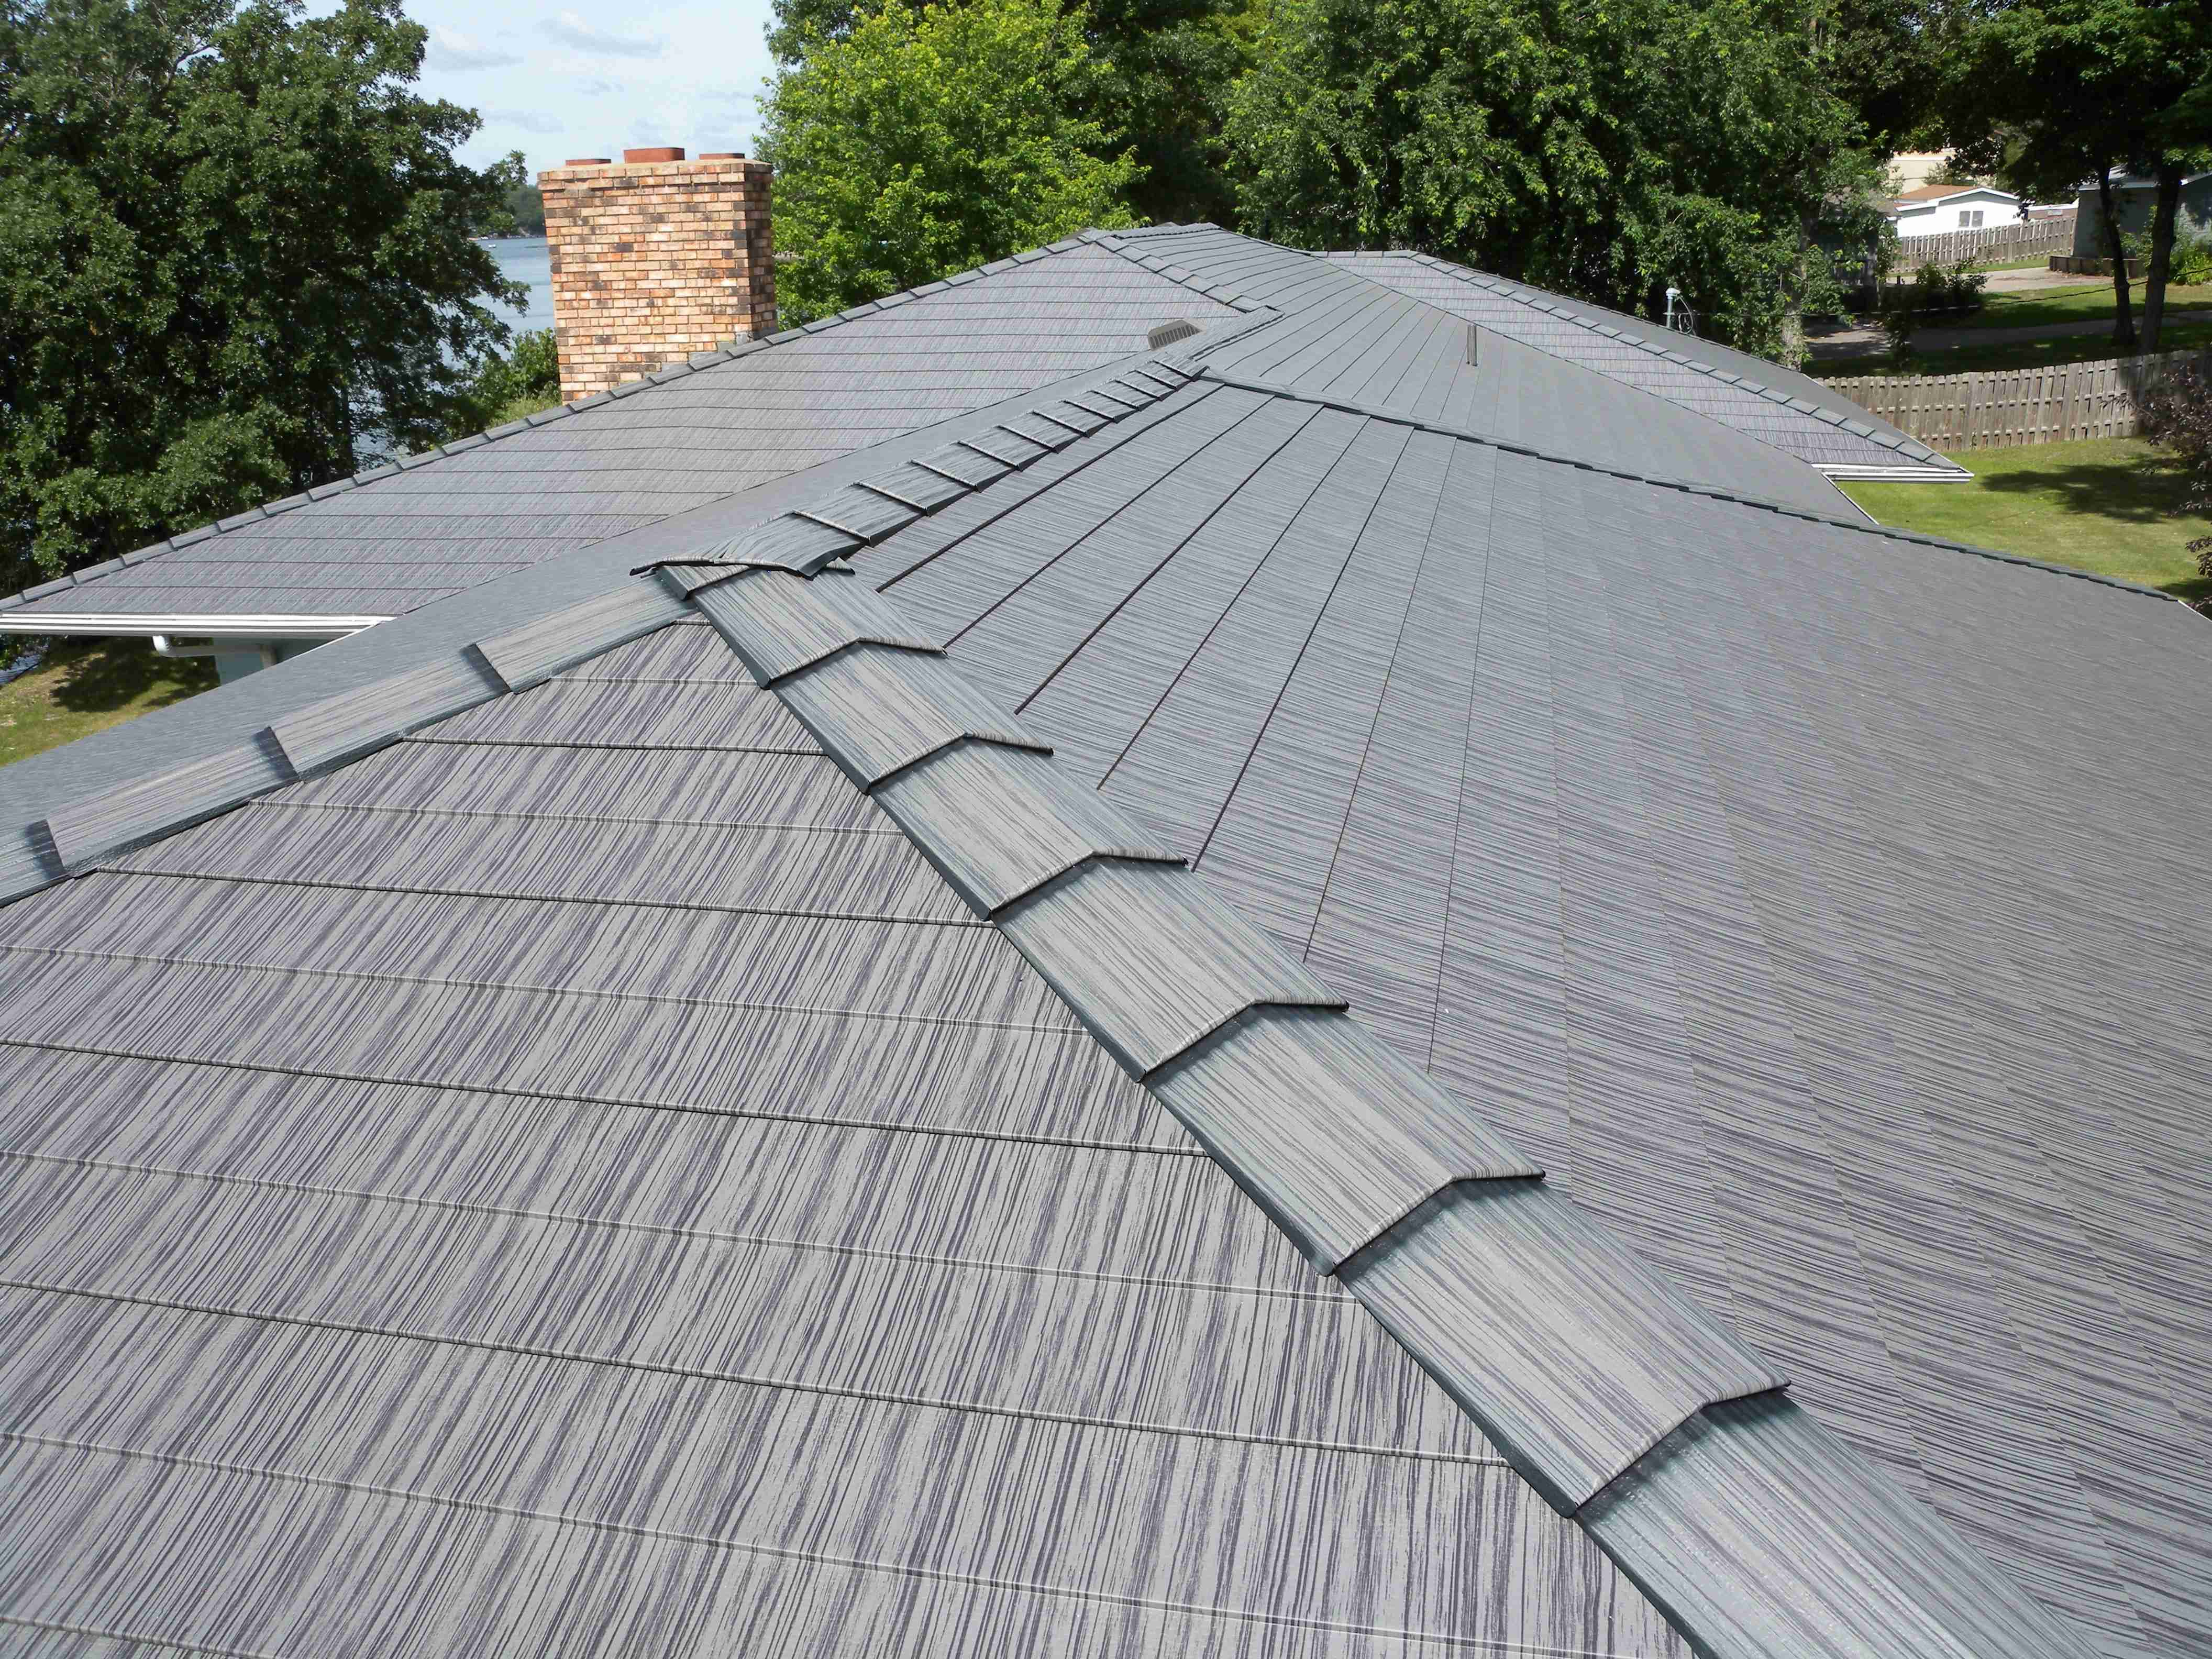 Roofer pitched roof